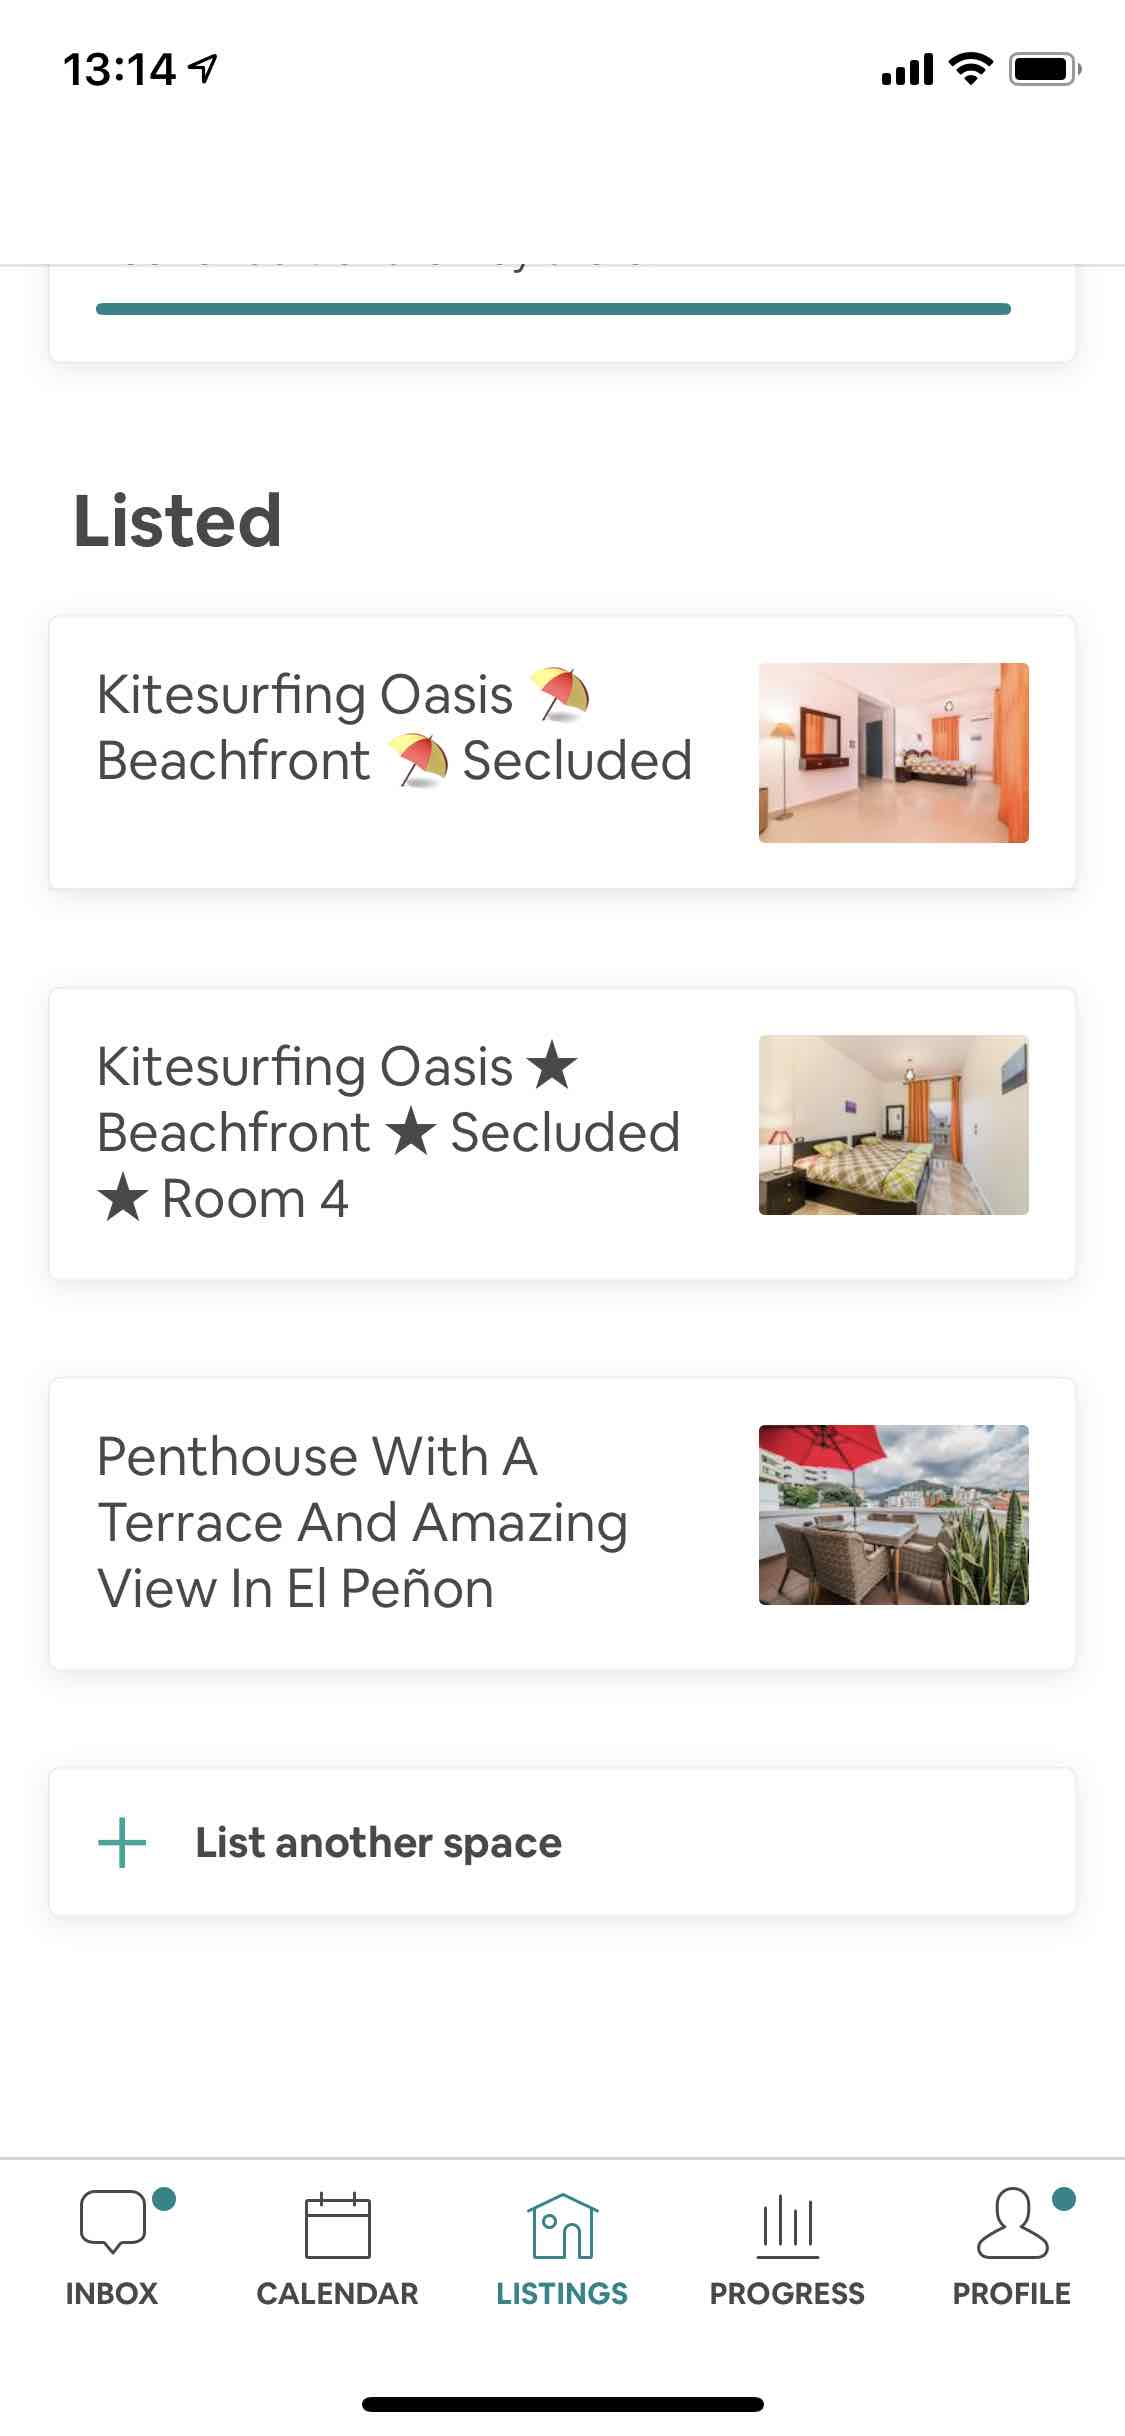 How to Share Your Airbnb Listing Link